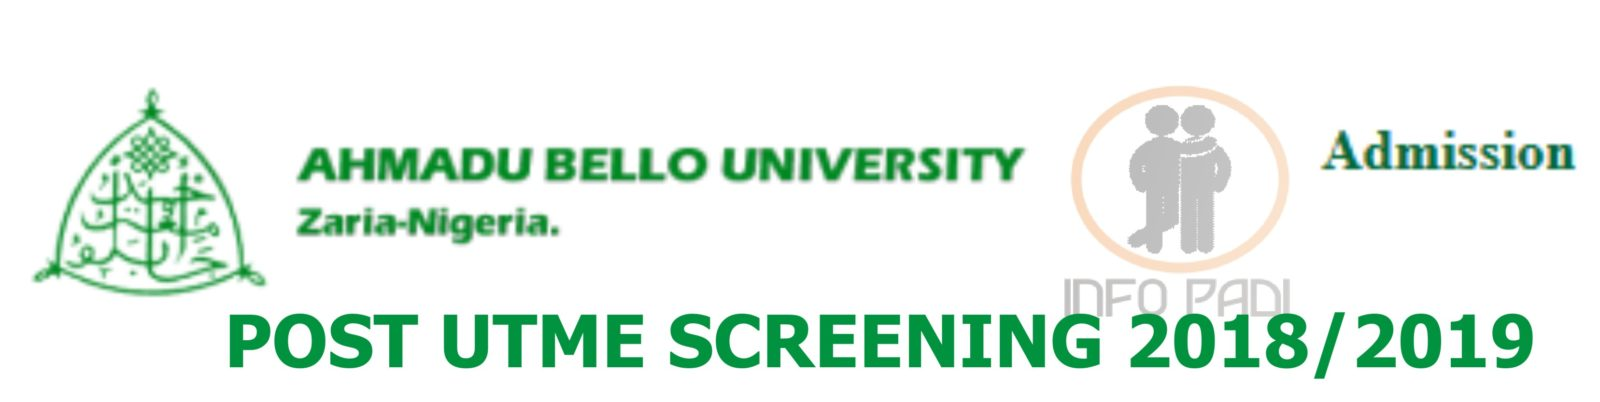 Ahmadu Bello University (ABU) Post UTME 2019/2020 Screening Exercise/Form- Apply for Admission